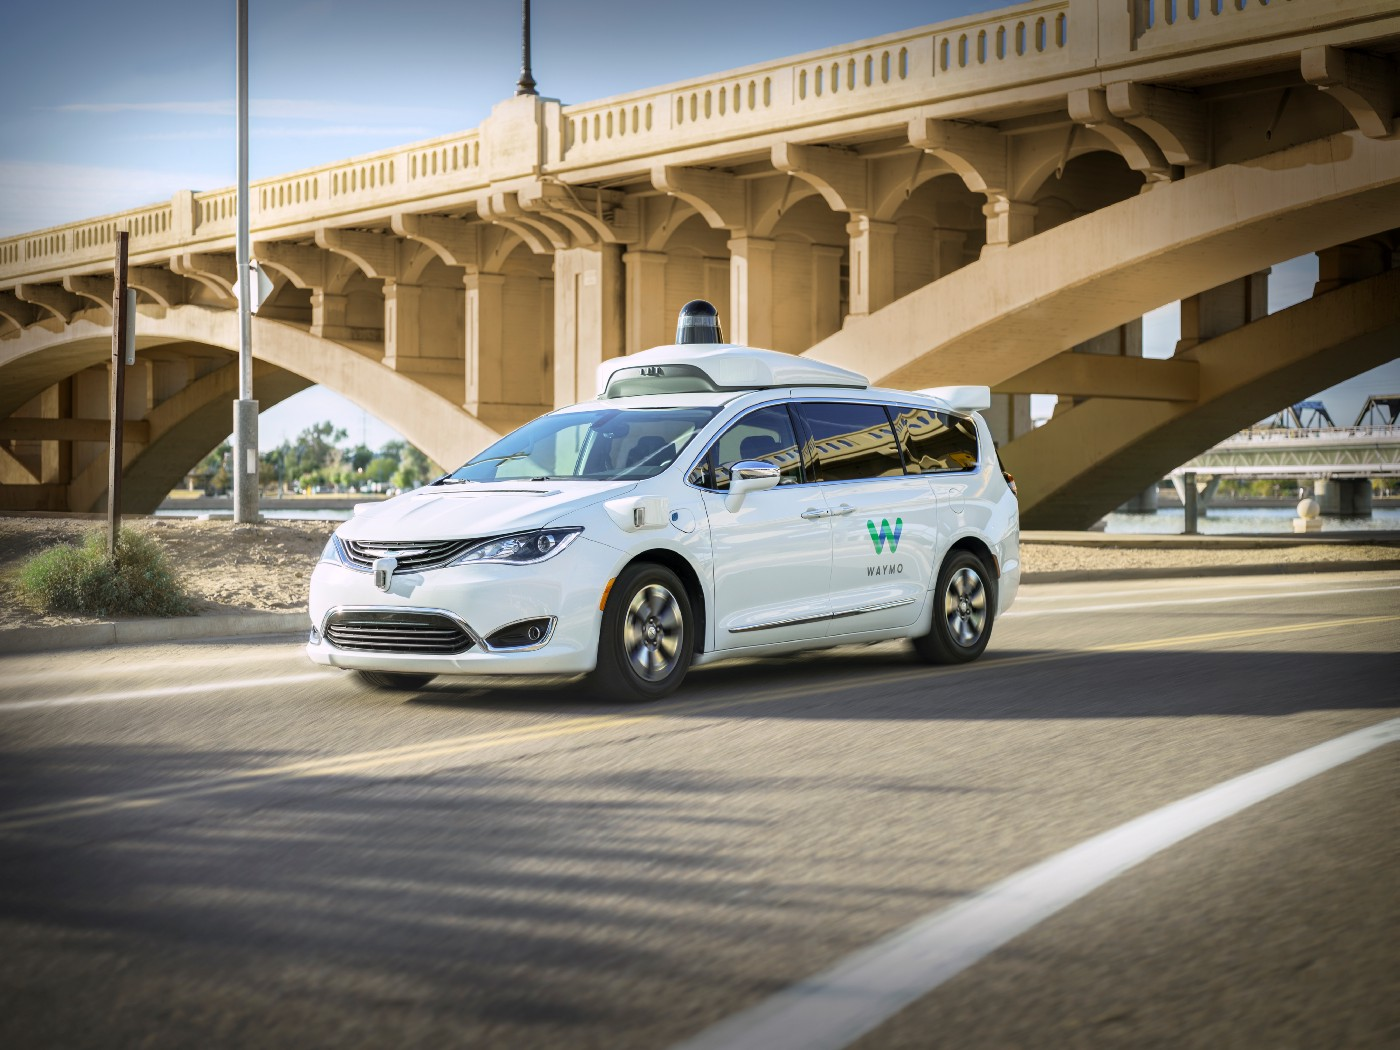 Waymo launches commercial self-driving taxi service in Phoenix